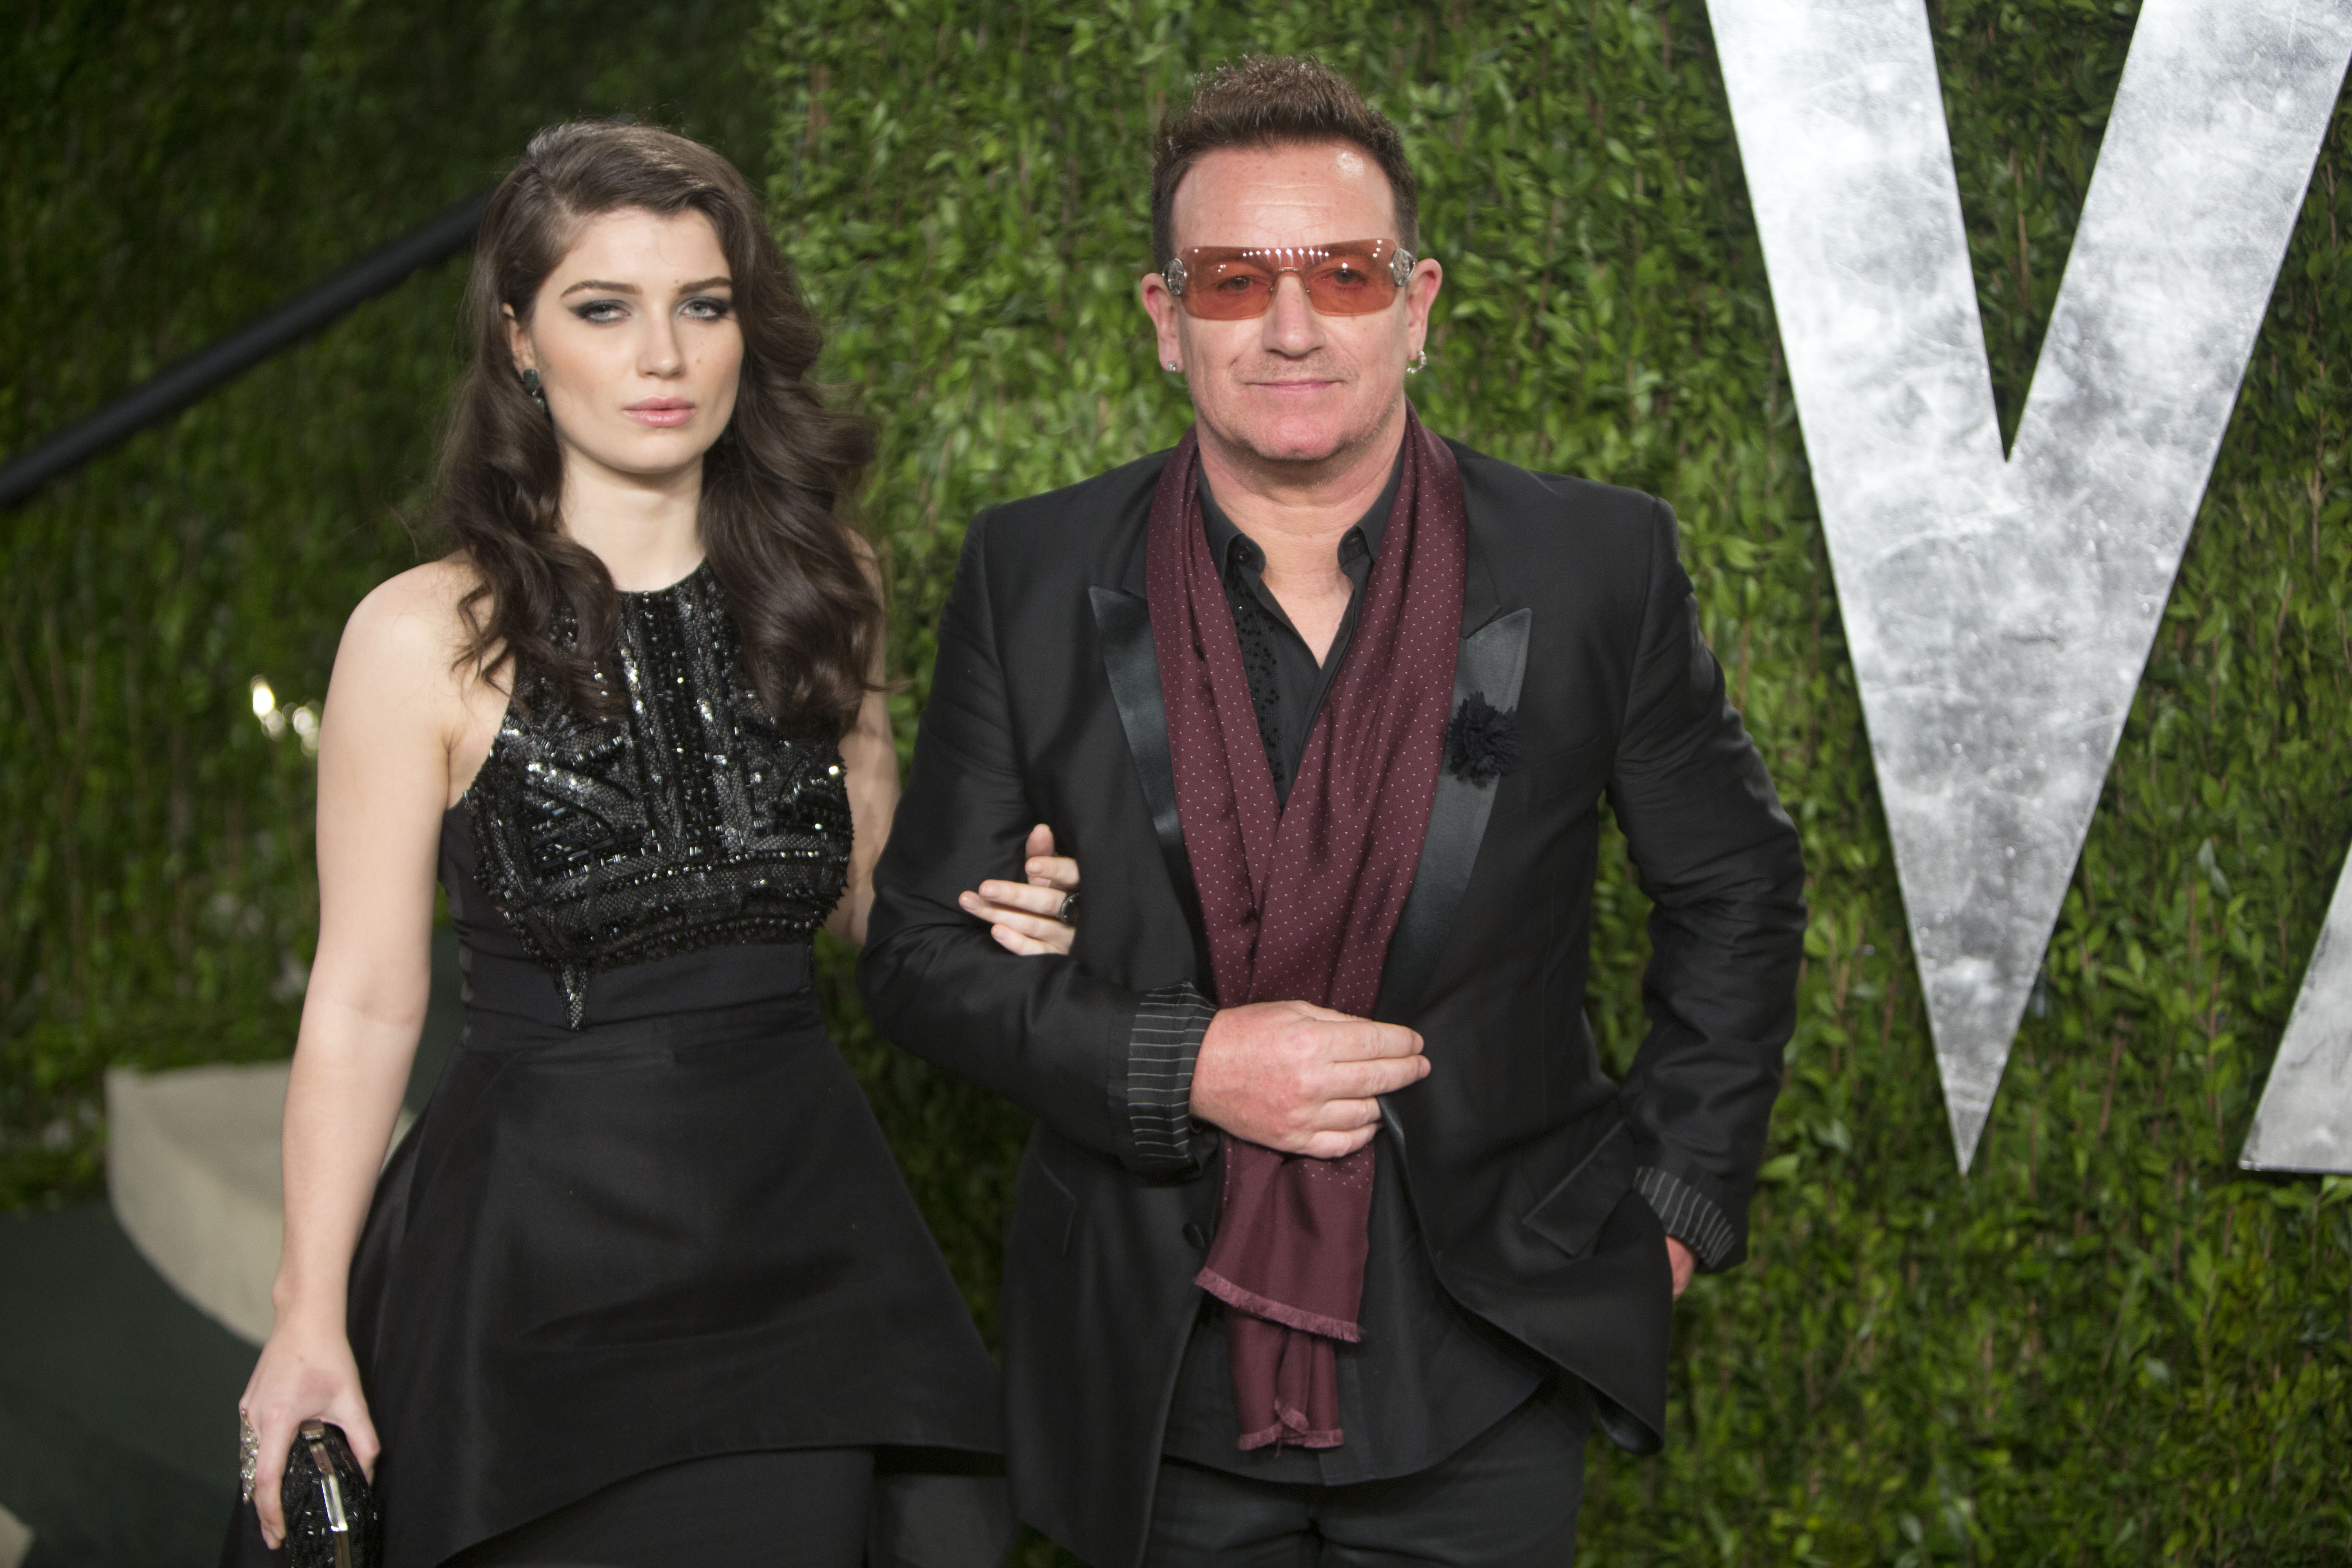 Bono and his daughter arrived at the Vanity Fair Oscar party on Sunday night.